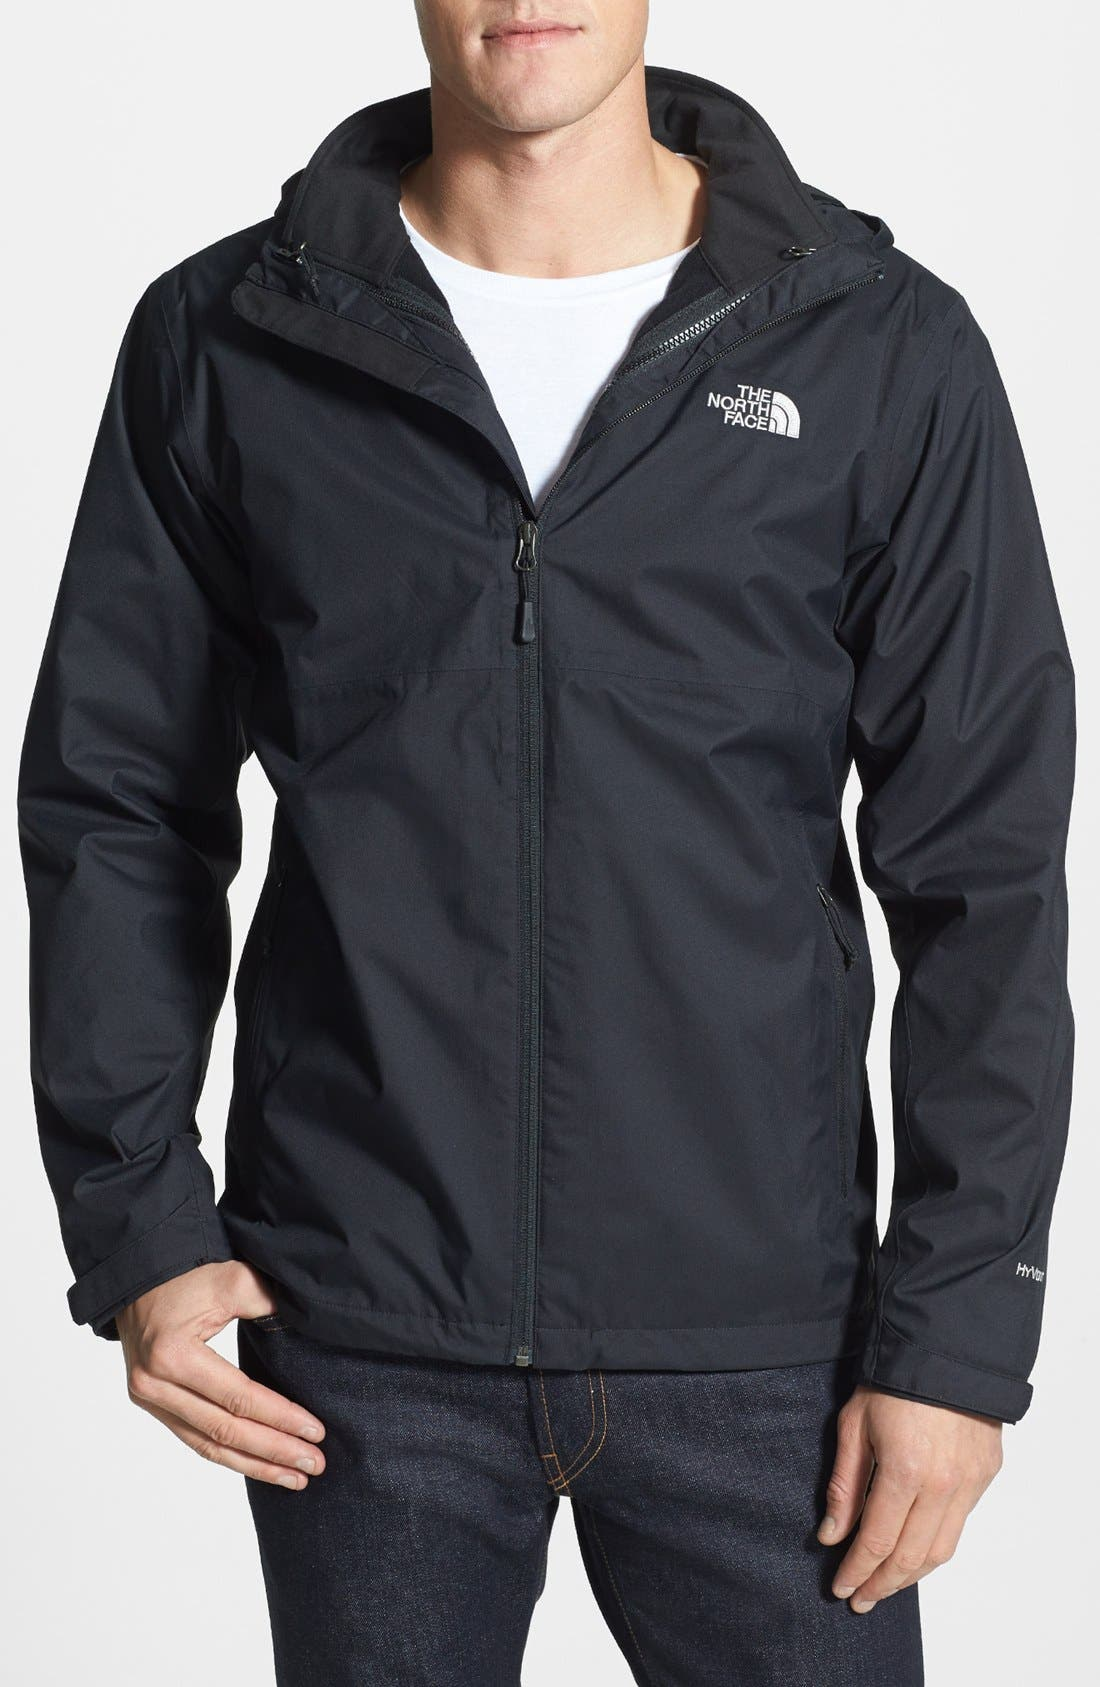 Main Image - The North Face 'Momentum TriClimate' 3-in-1 Waterproof Hooded Jacket